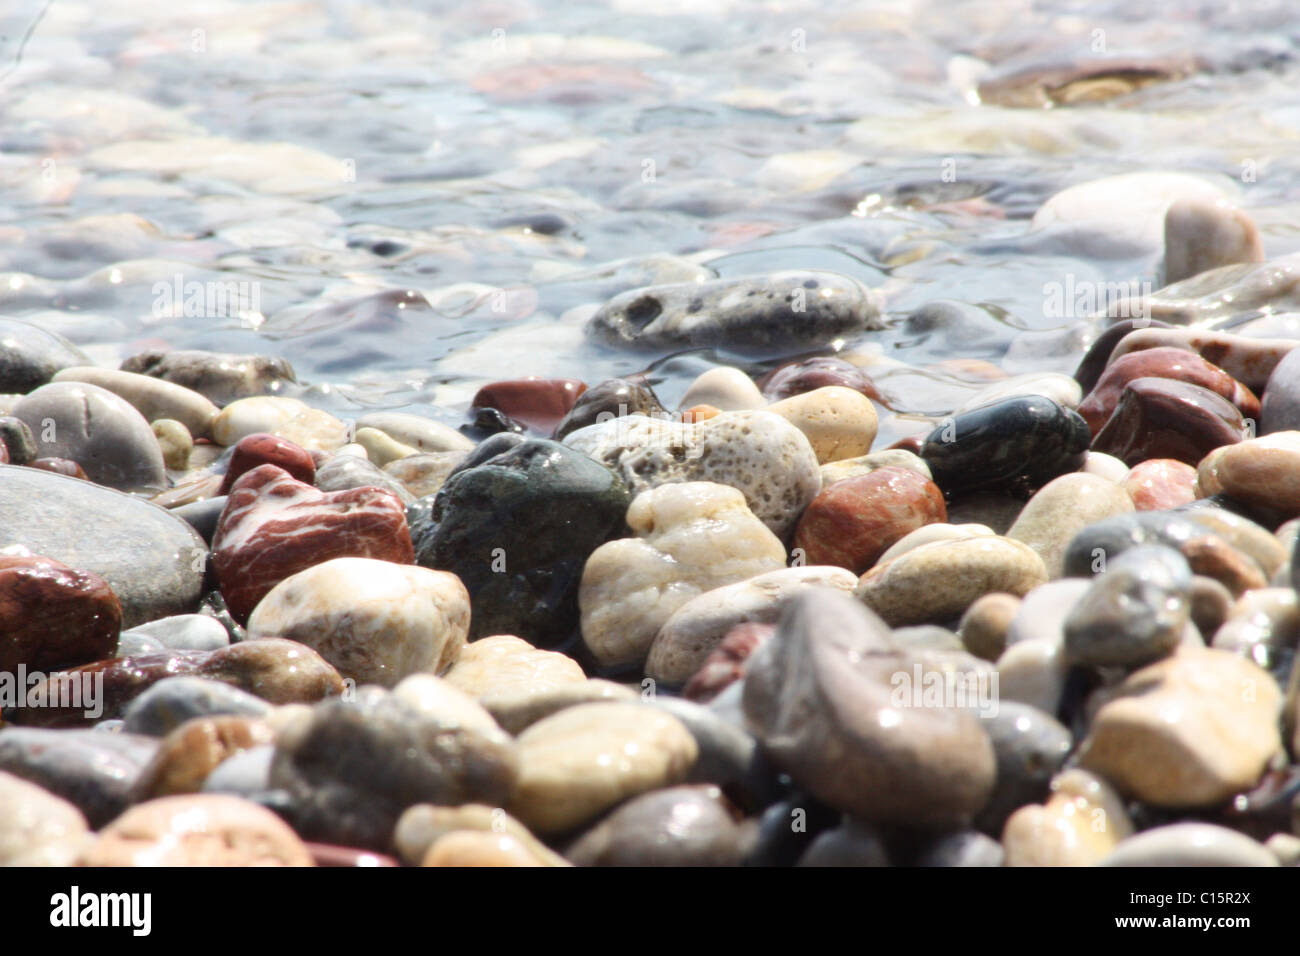 Sunlit wet pebbles on the beach with the tide gently lapping over them. - Stock Image